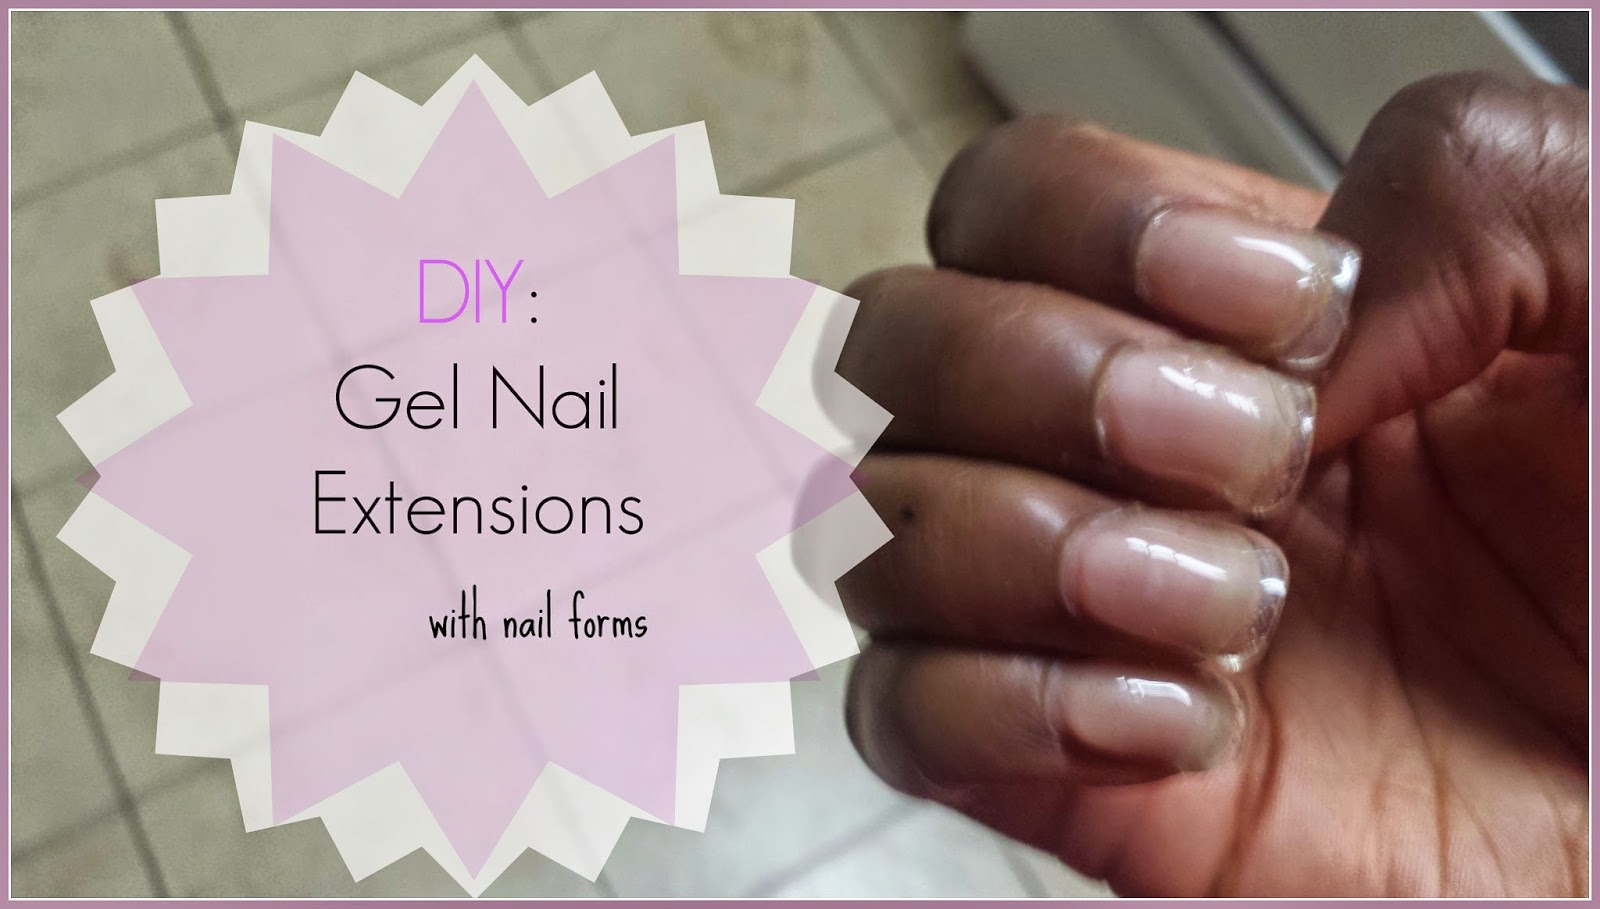 Hypnotic Glamour Beauty Blog: Gel Nail Extensions with Nail Forms + ...